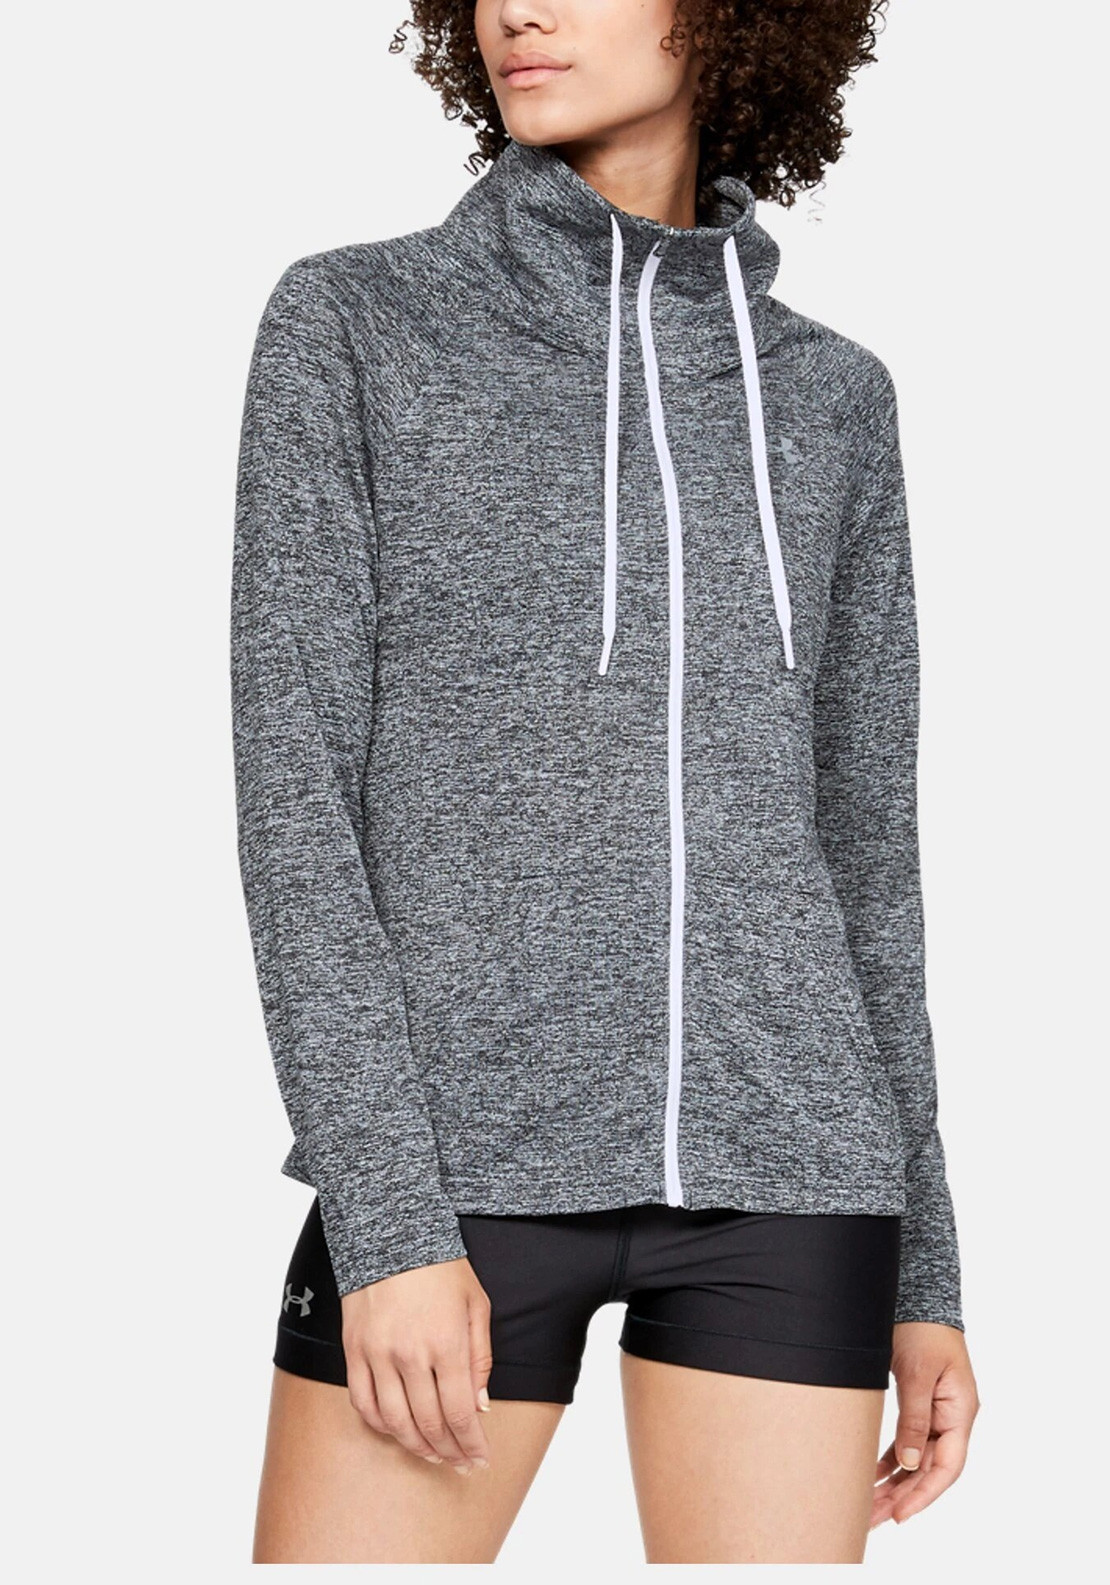 f0207774 Under Armour Womens UA Tech Twist Full Zip Top, Grey | McElhinneys